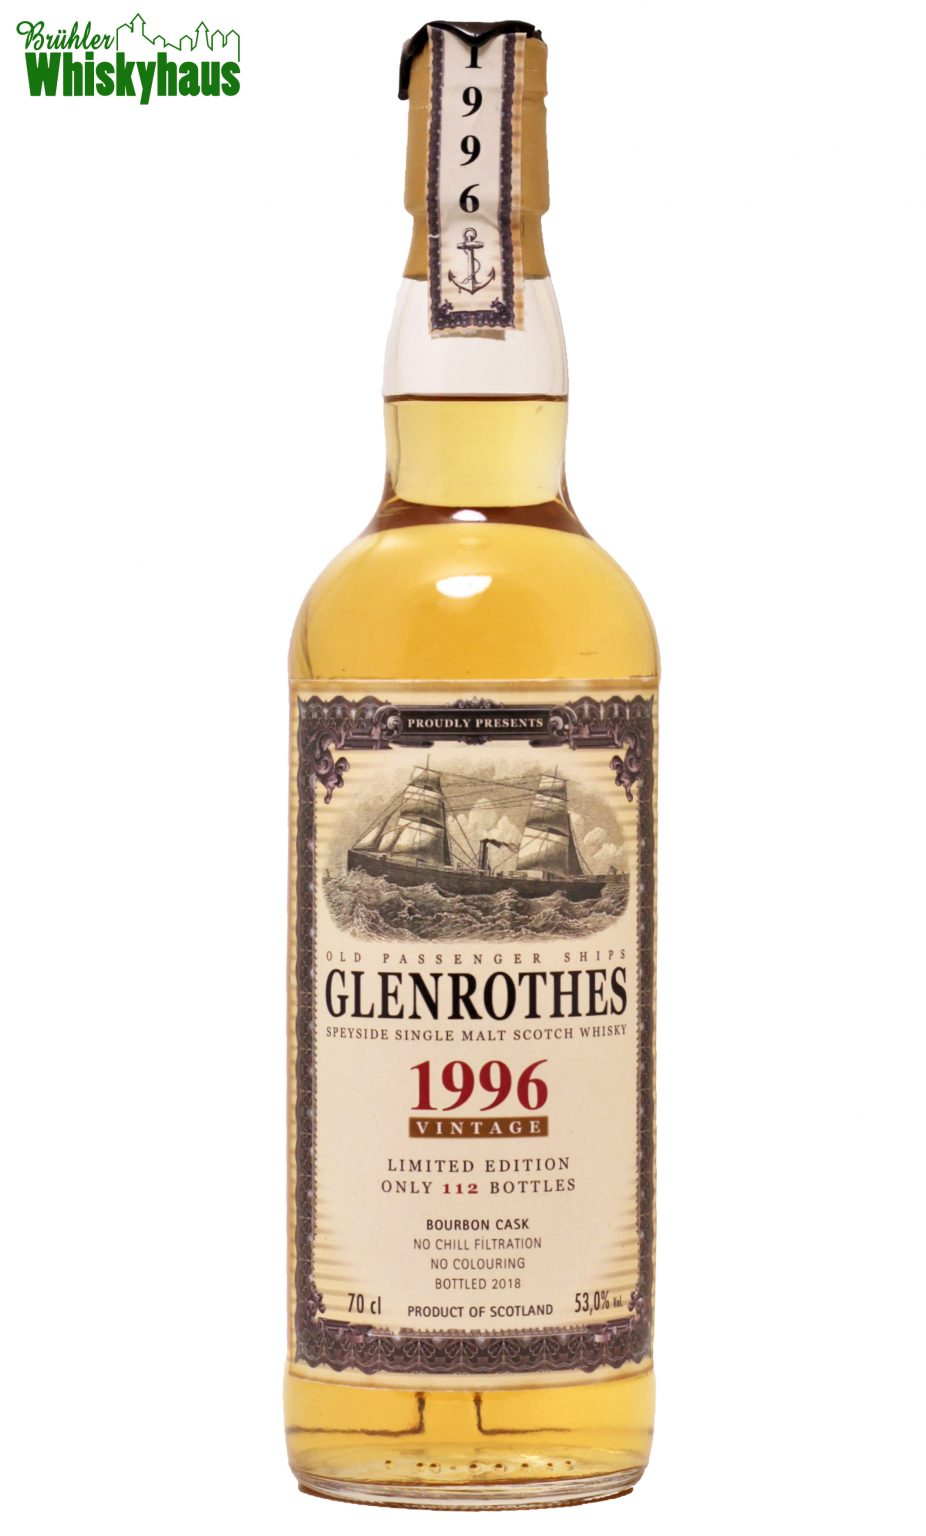 Glenrothes 21 Jahre - Bourbon Cask No. 82-a - Old Passenger Ships for Jack Wiebers Whisky World - Speyside Single Malt Scotch Whisky